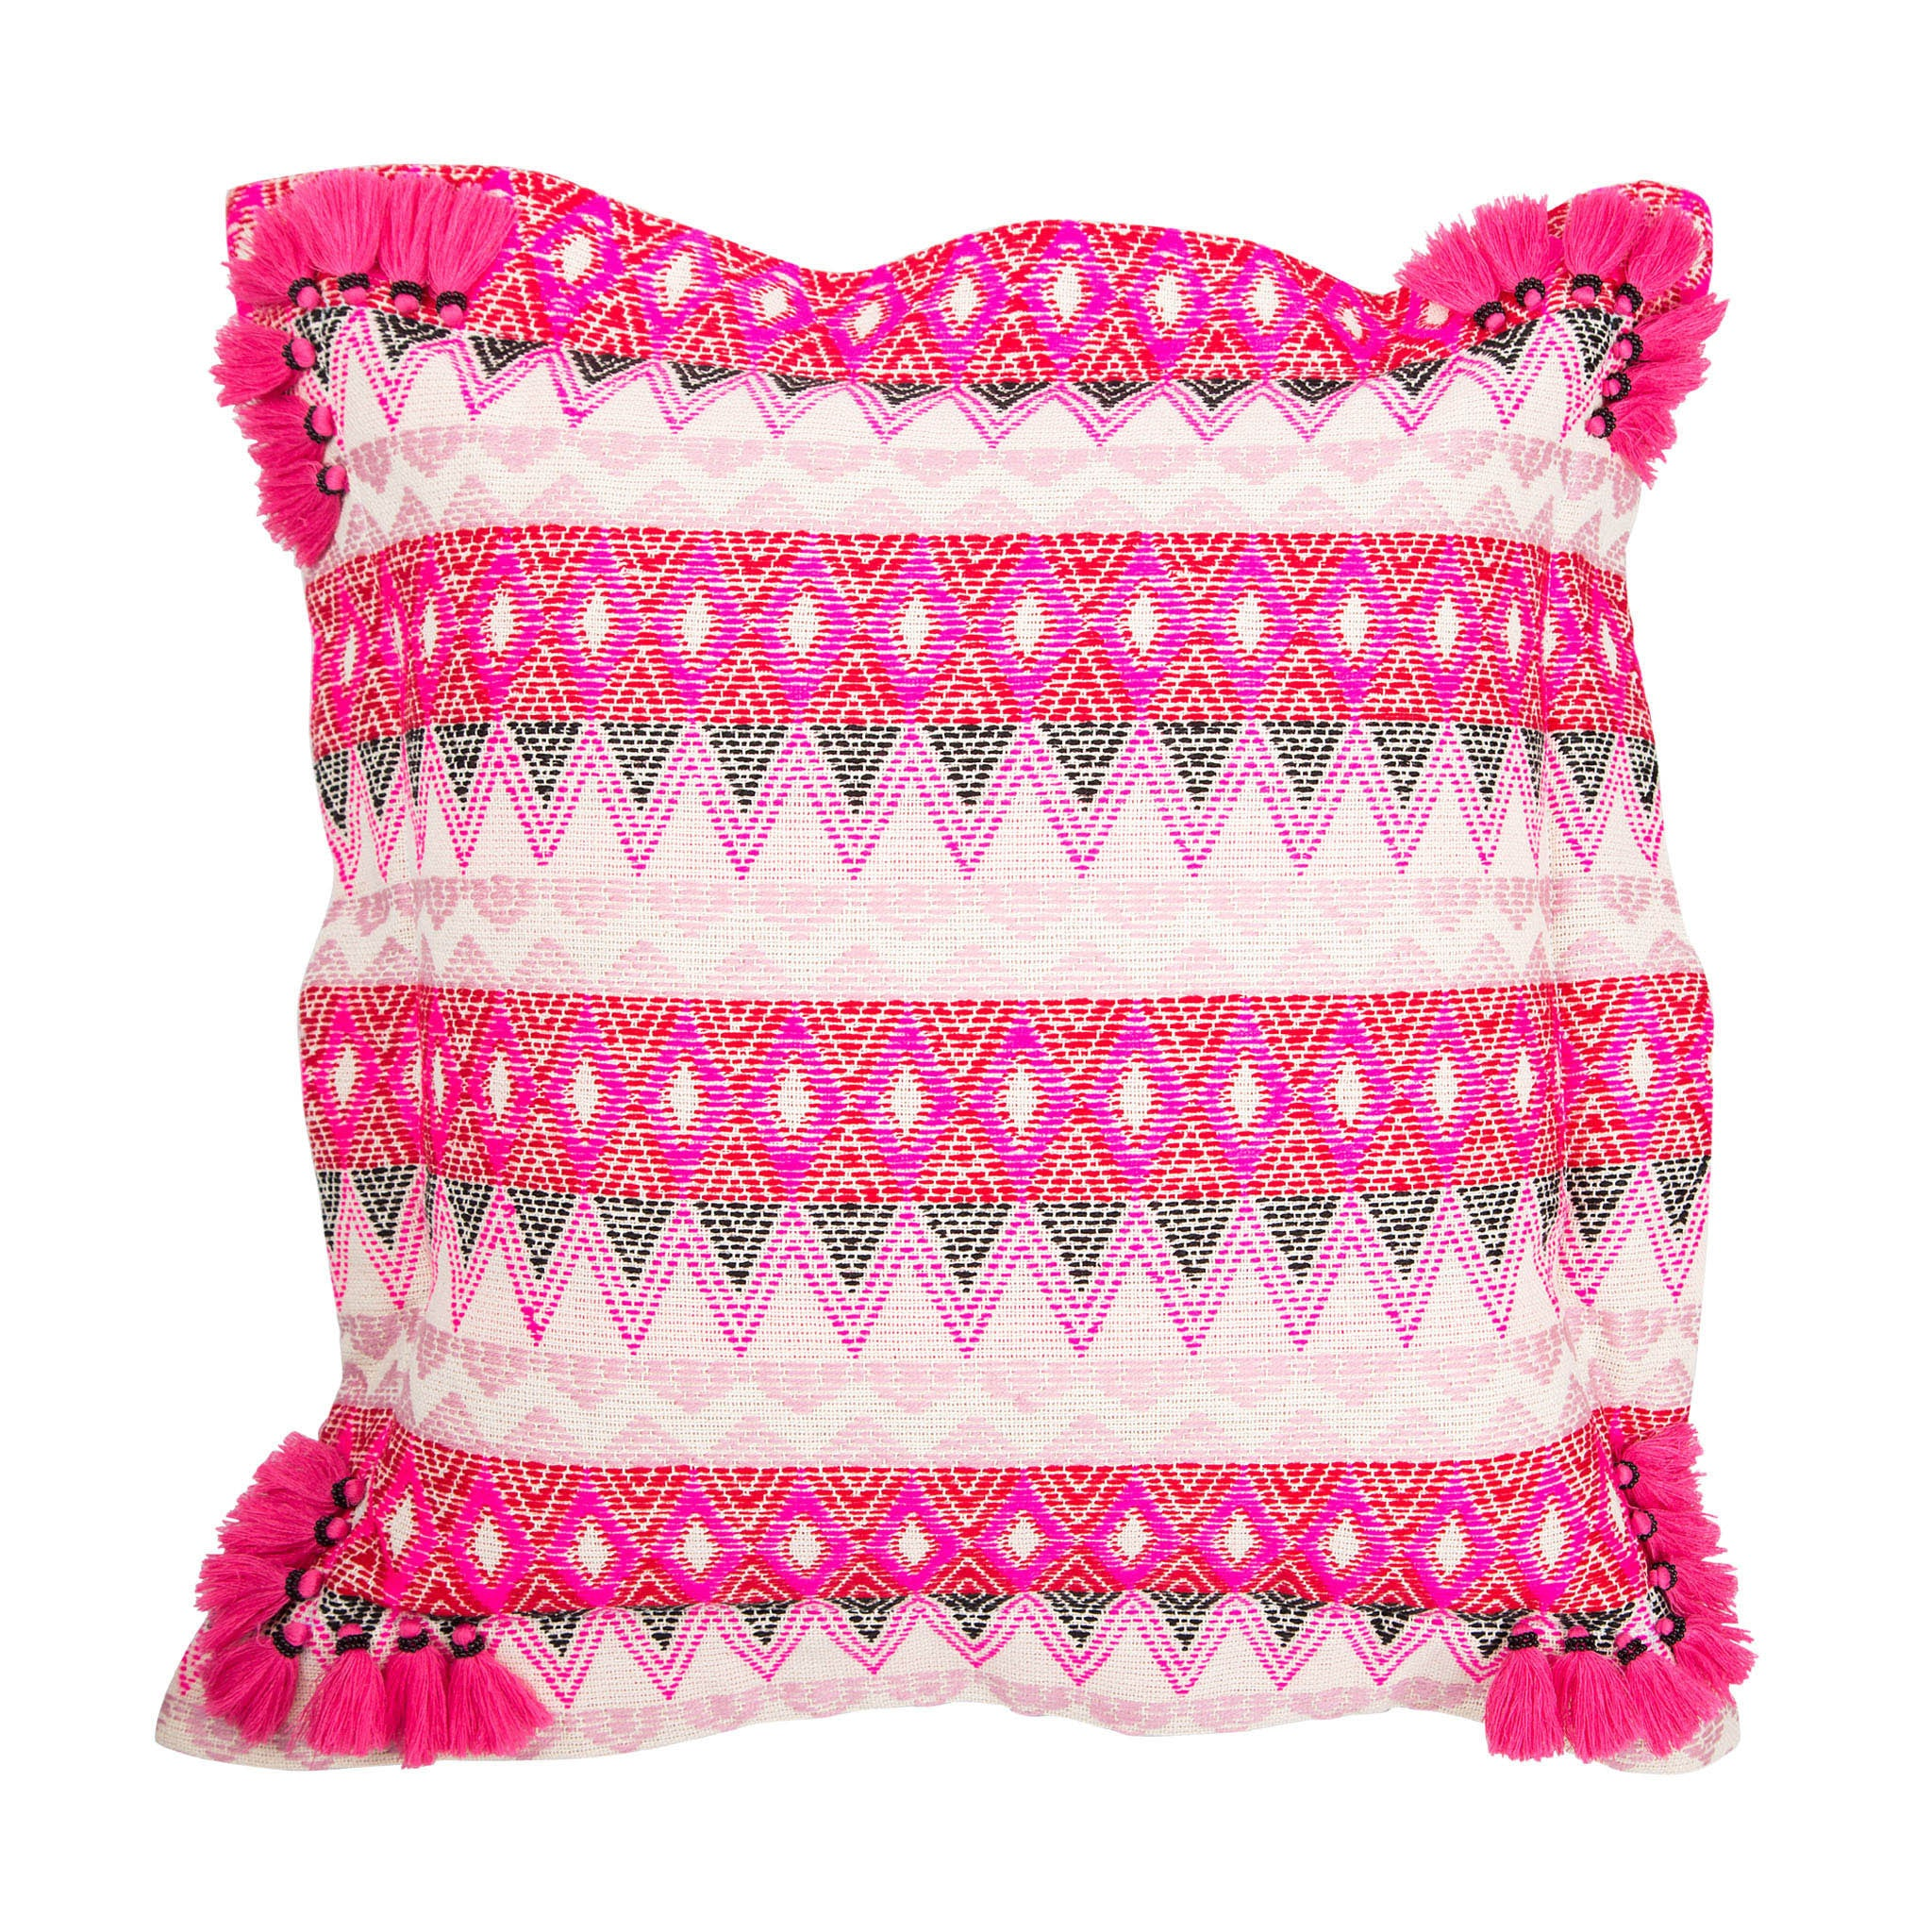 Bedouin-style pink cotton tasselled cushion - Bivain - 1